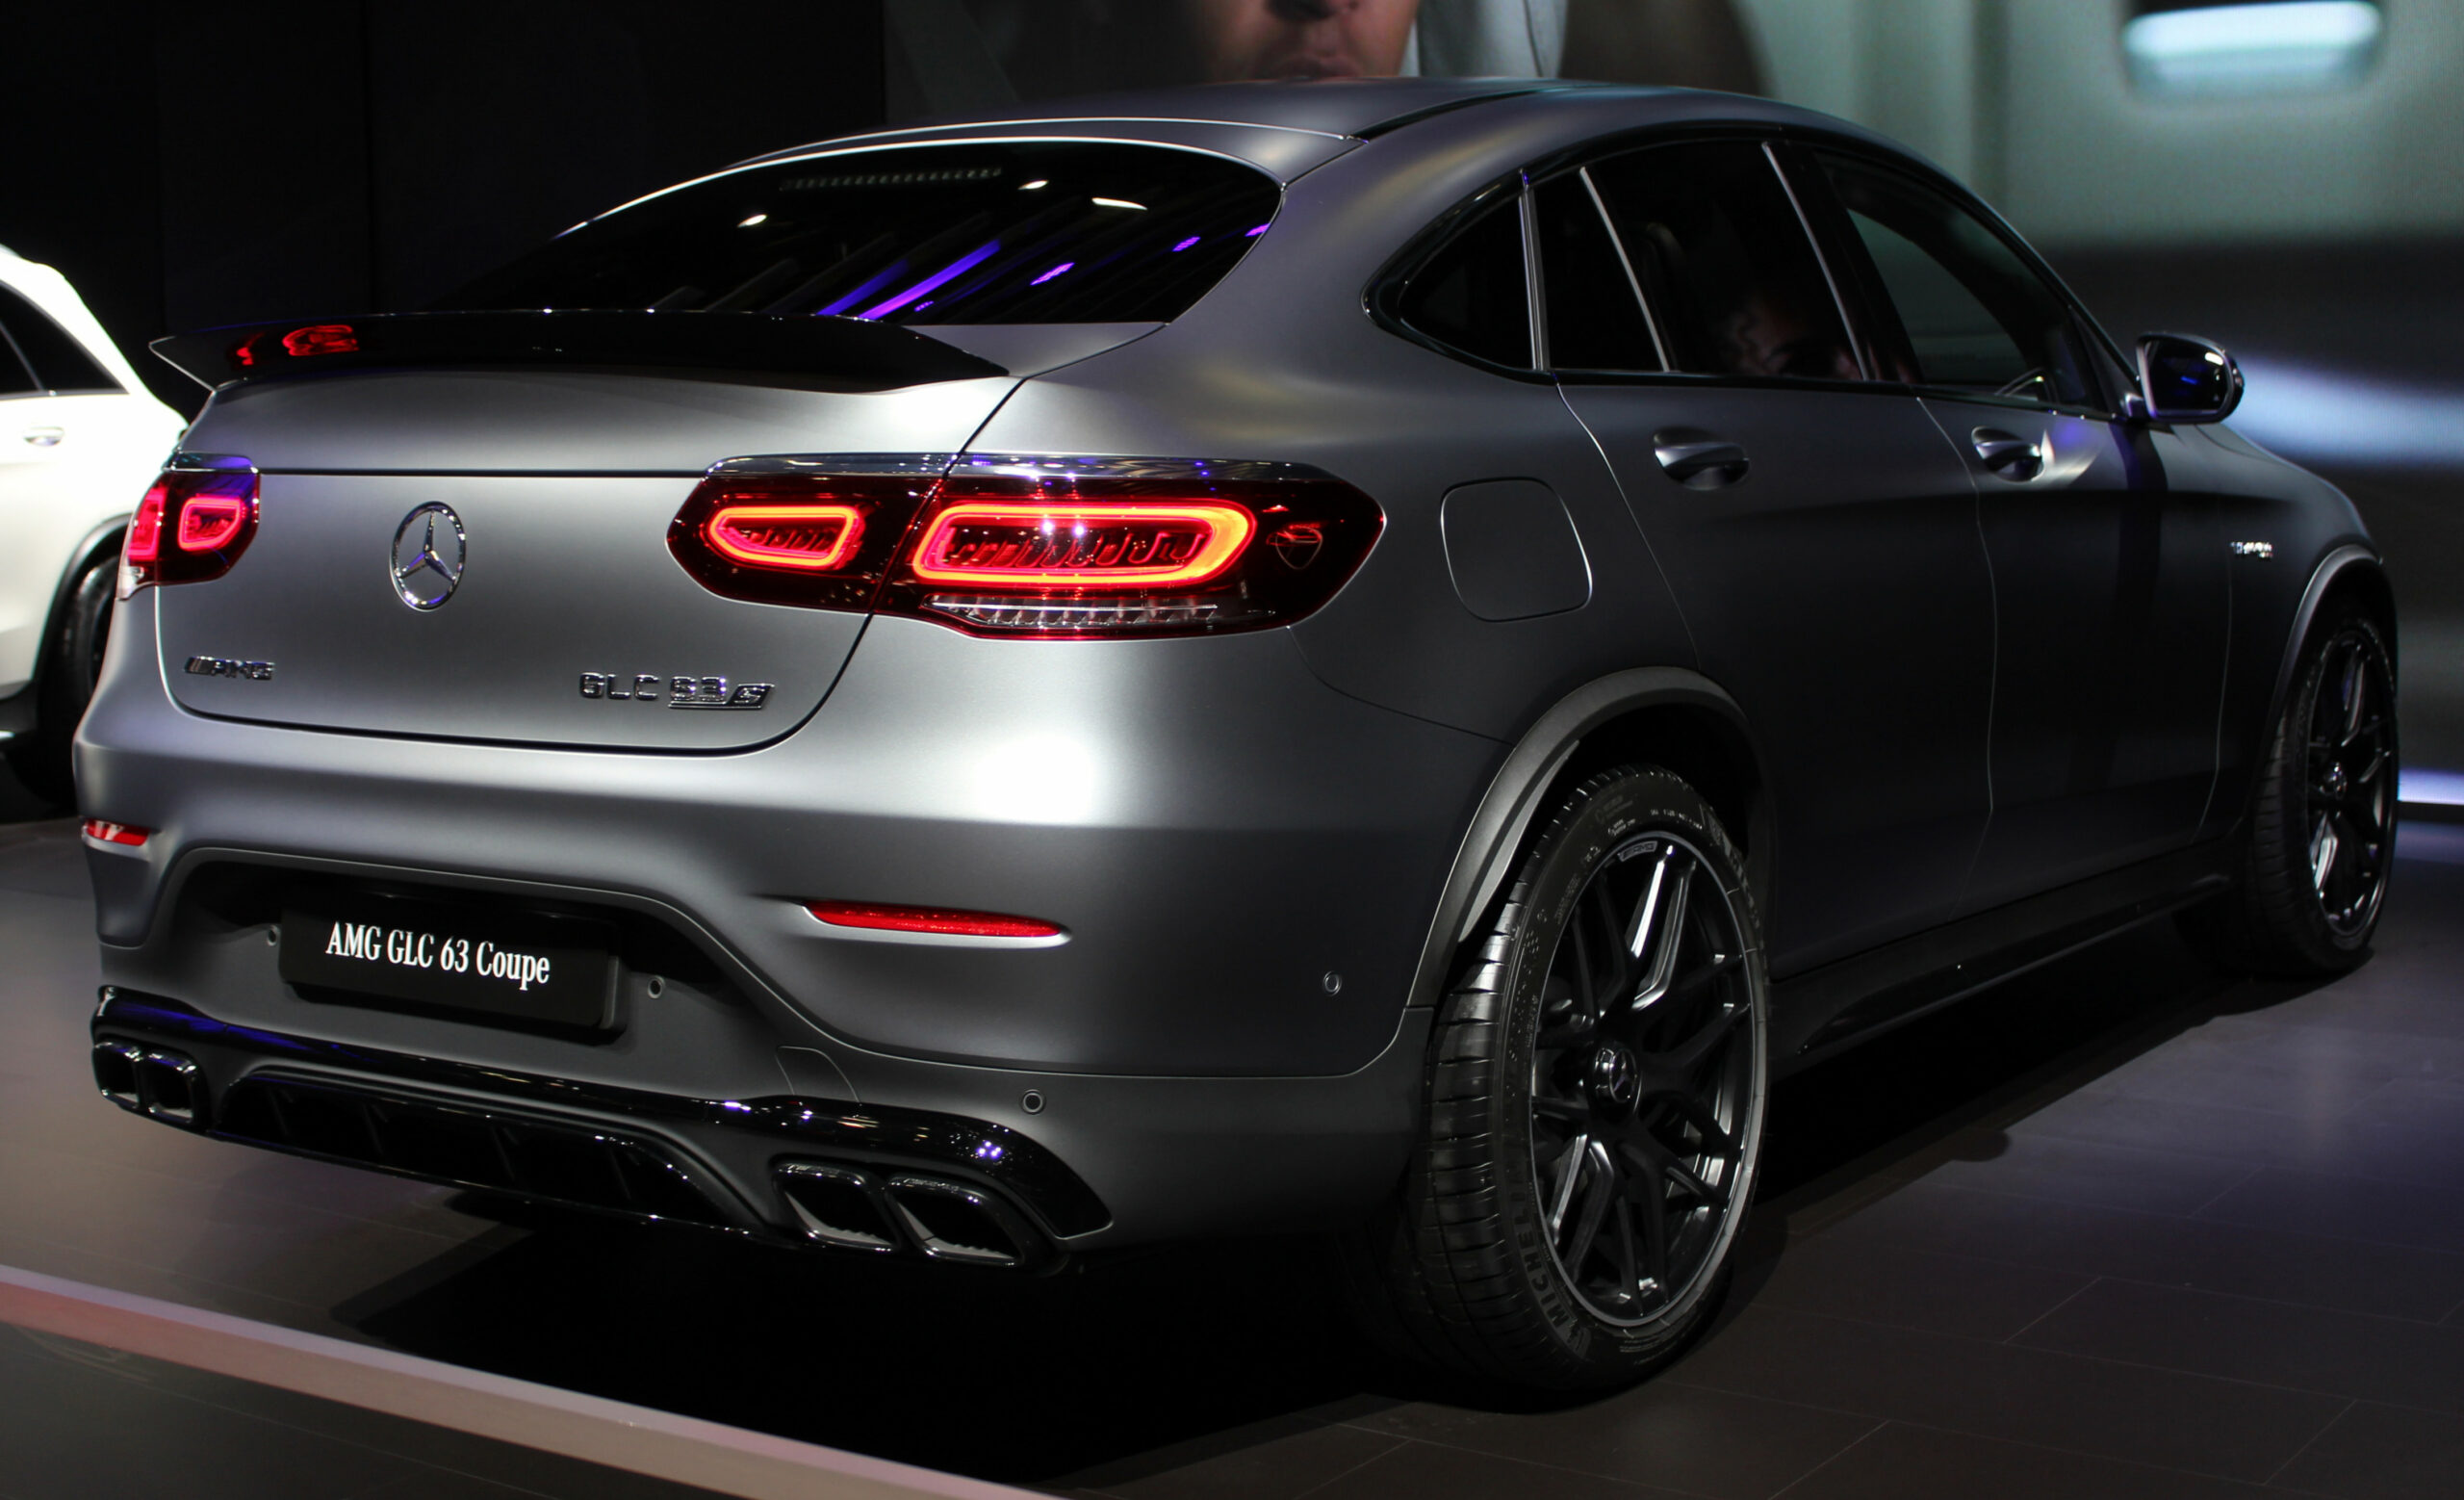 Datei:9 Mercedes-AMG GLC 9 S Coupe rear NYIAS 9.jpg – Wikipedia